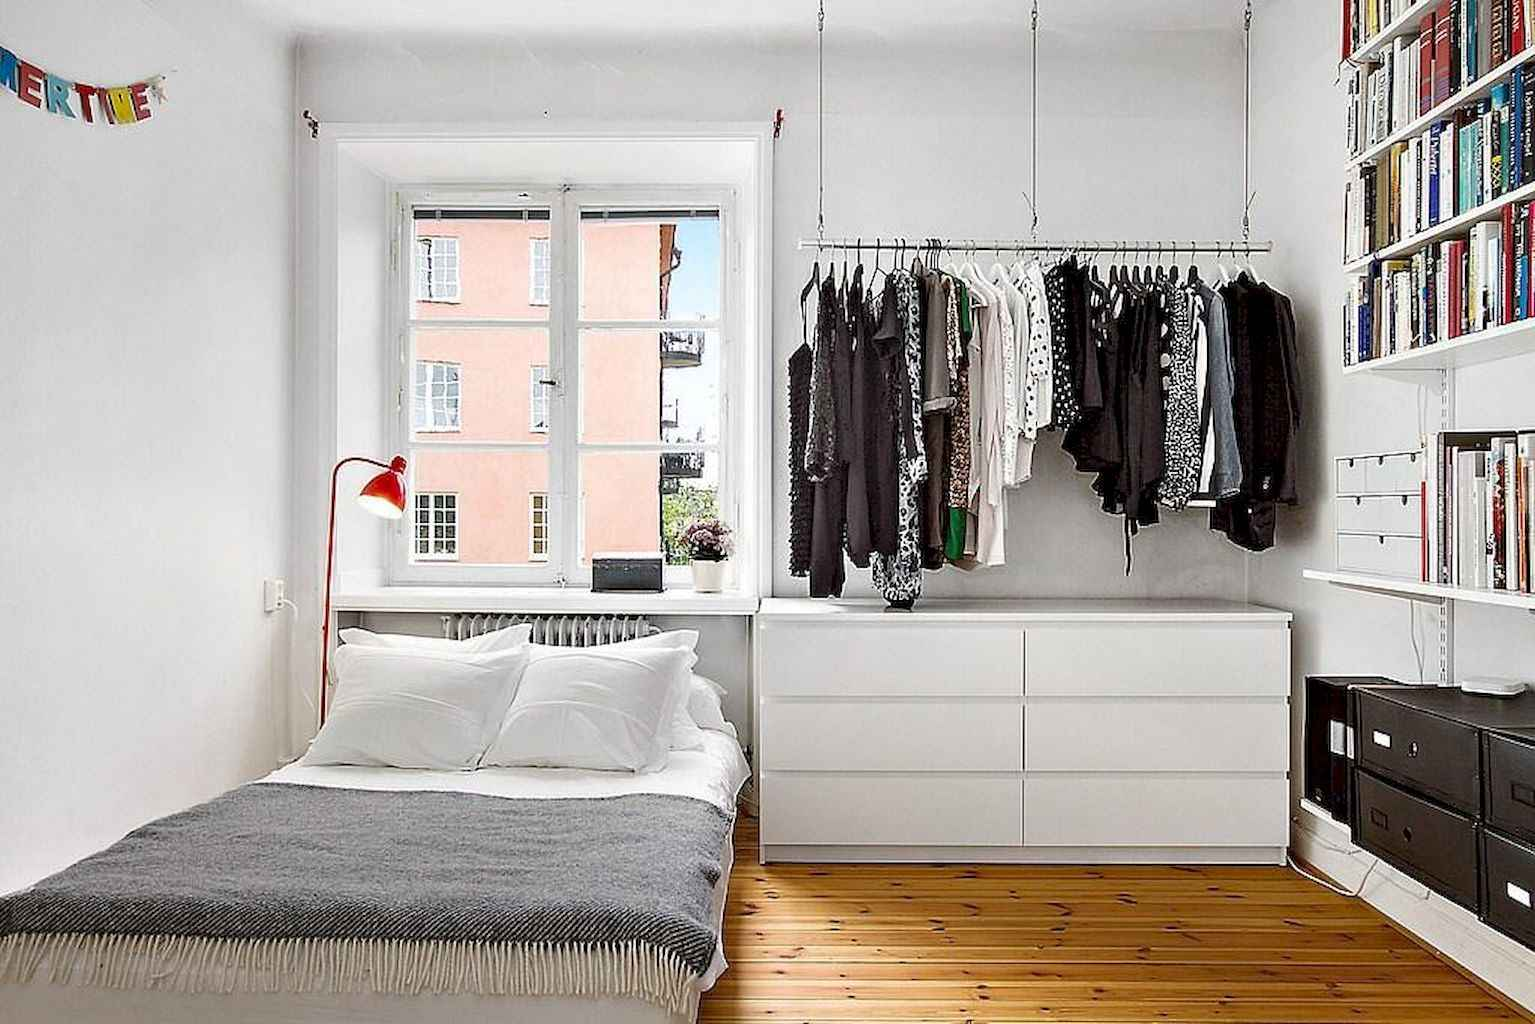 Cool small apartment decorating ideas on a budget (27)